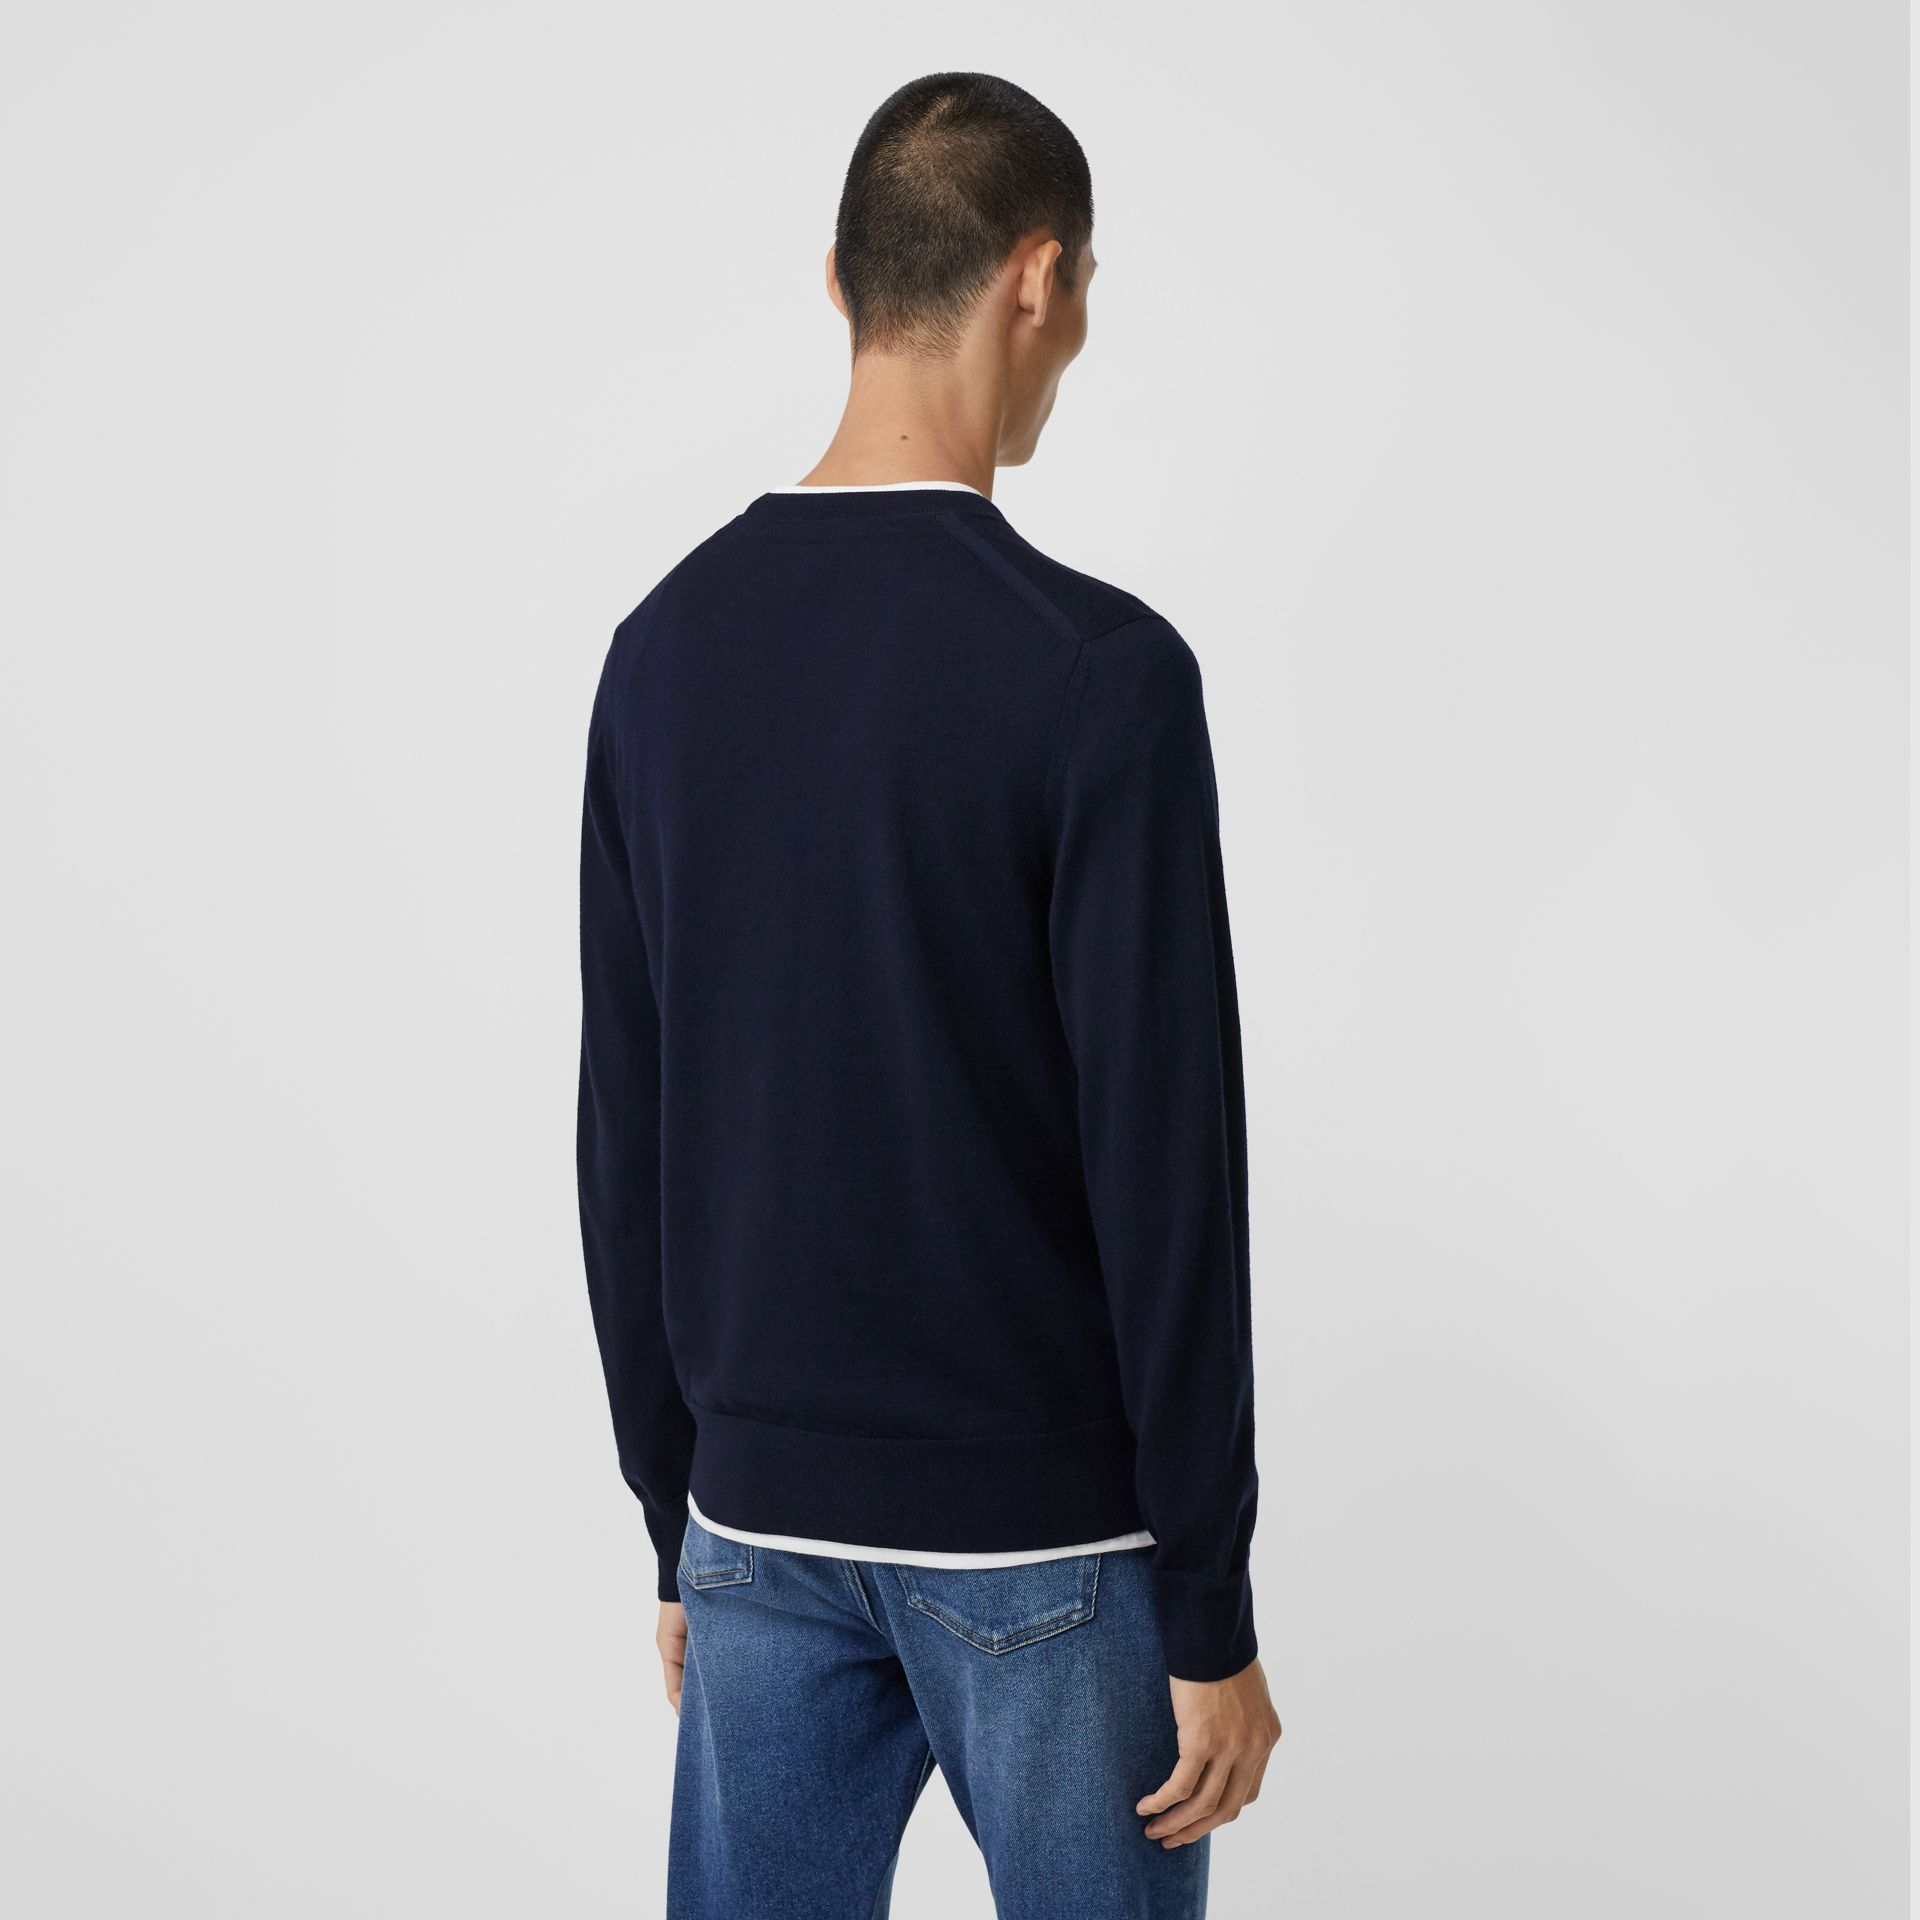 Monogram Motif Merino Wool Sweater in Navy - Men | Burberry - gallery image 2